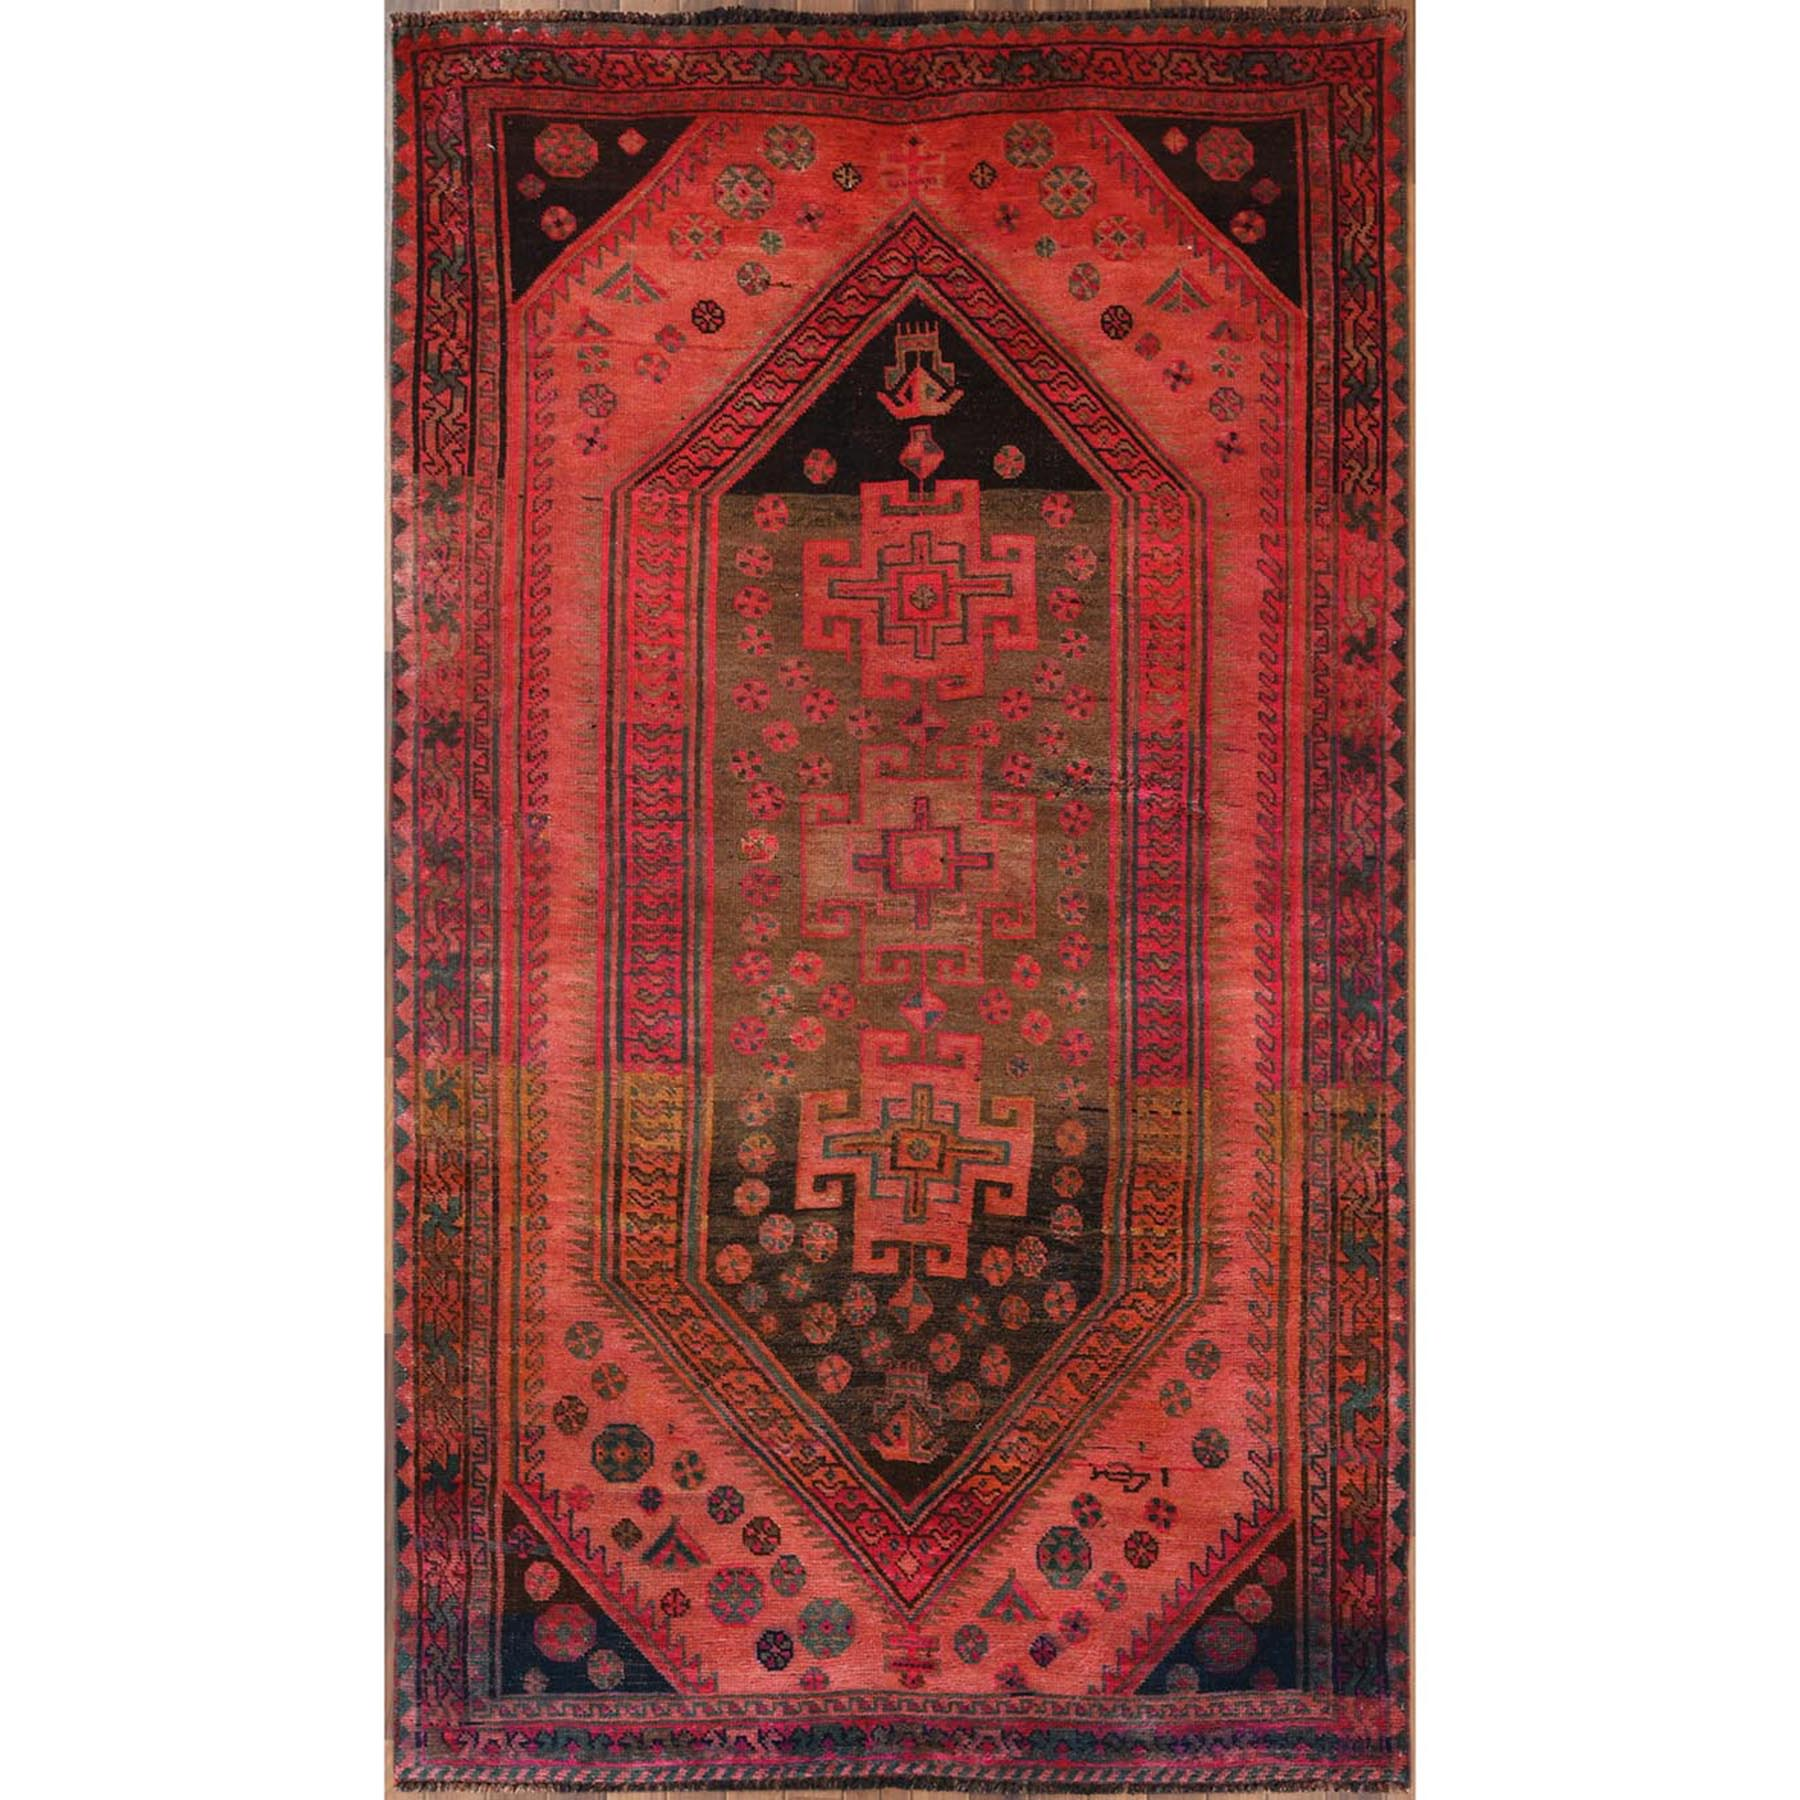 5'x9' Bohemian Persian Qashqai Gray Vintage Worn Down Hand Woven Organic Wool Clean Oriental Gallery Size Runner Rug